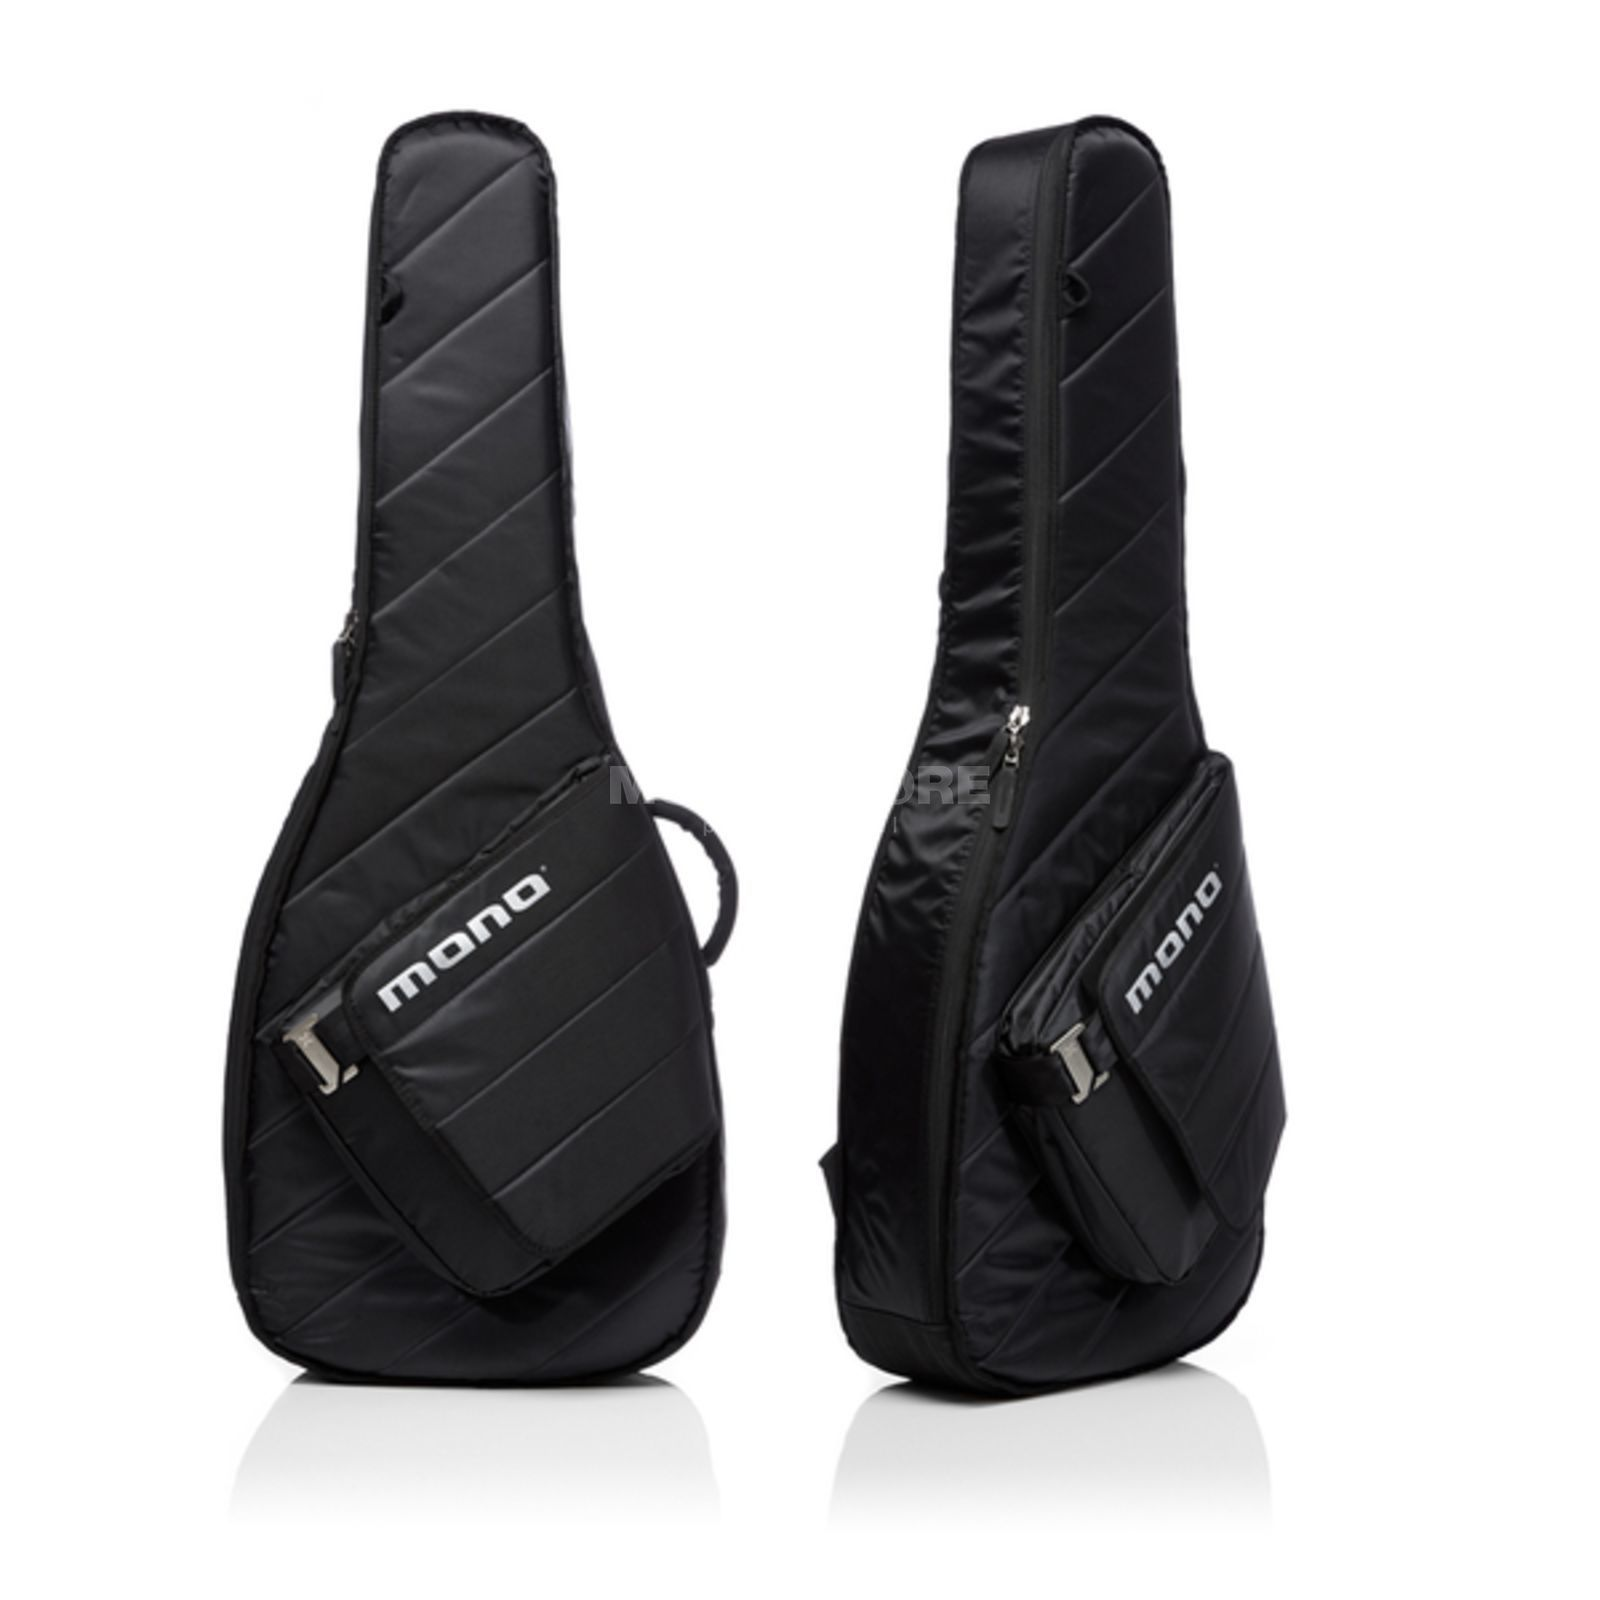 MONOcase Dreadnought Sleeve Black Produktbild